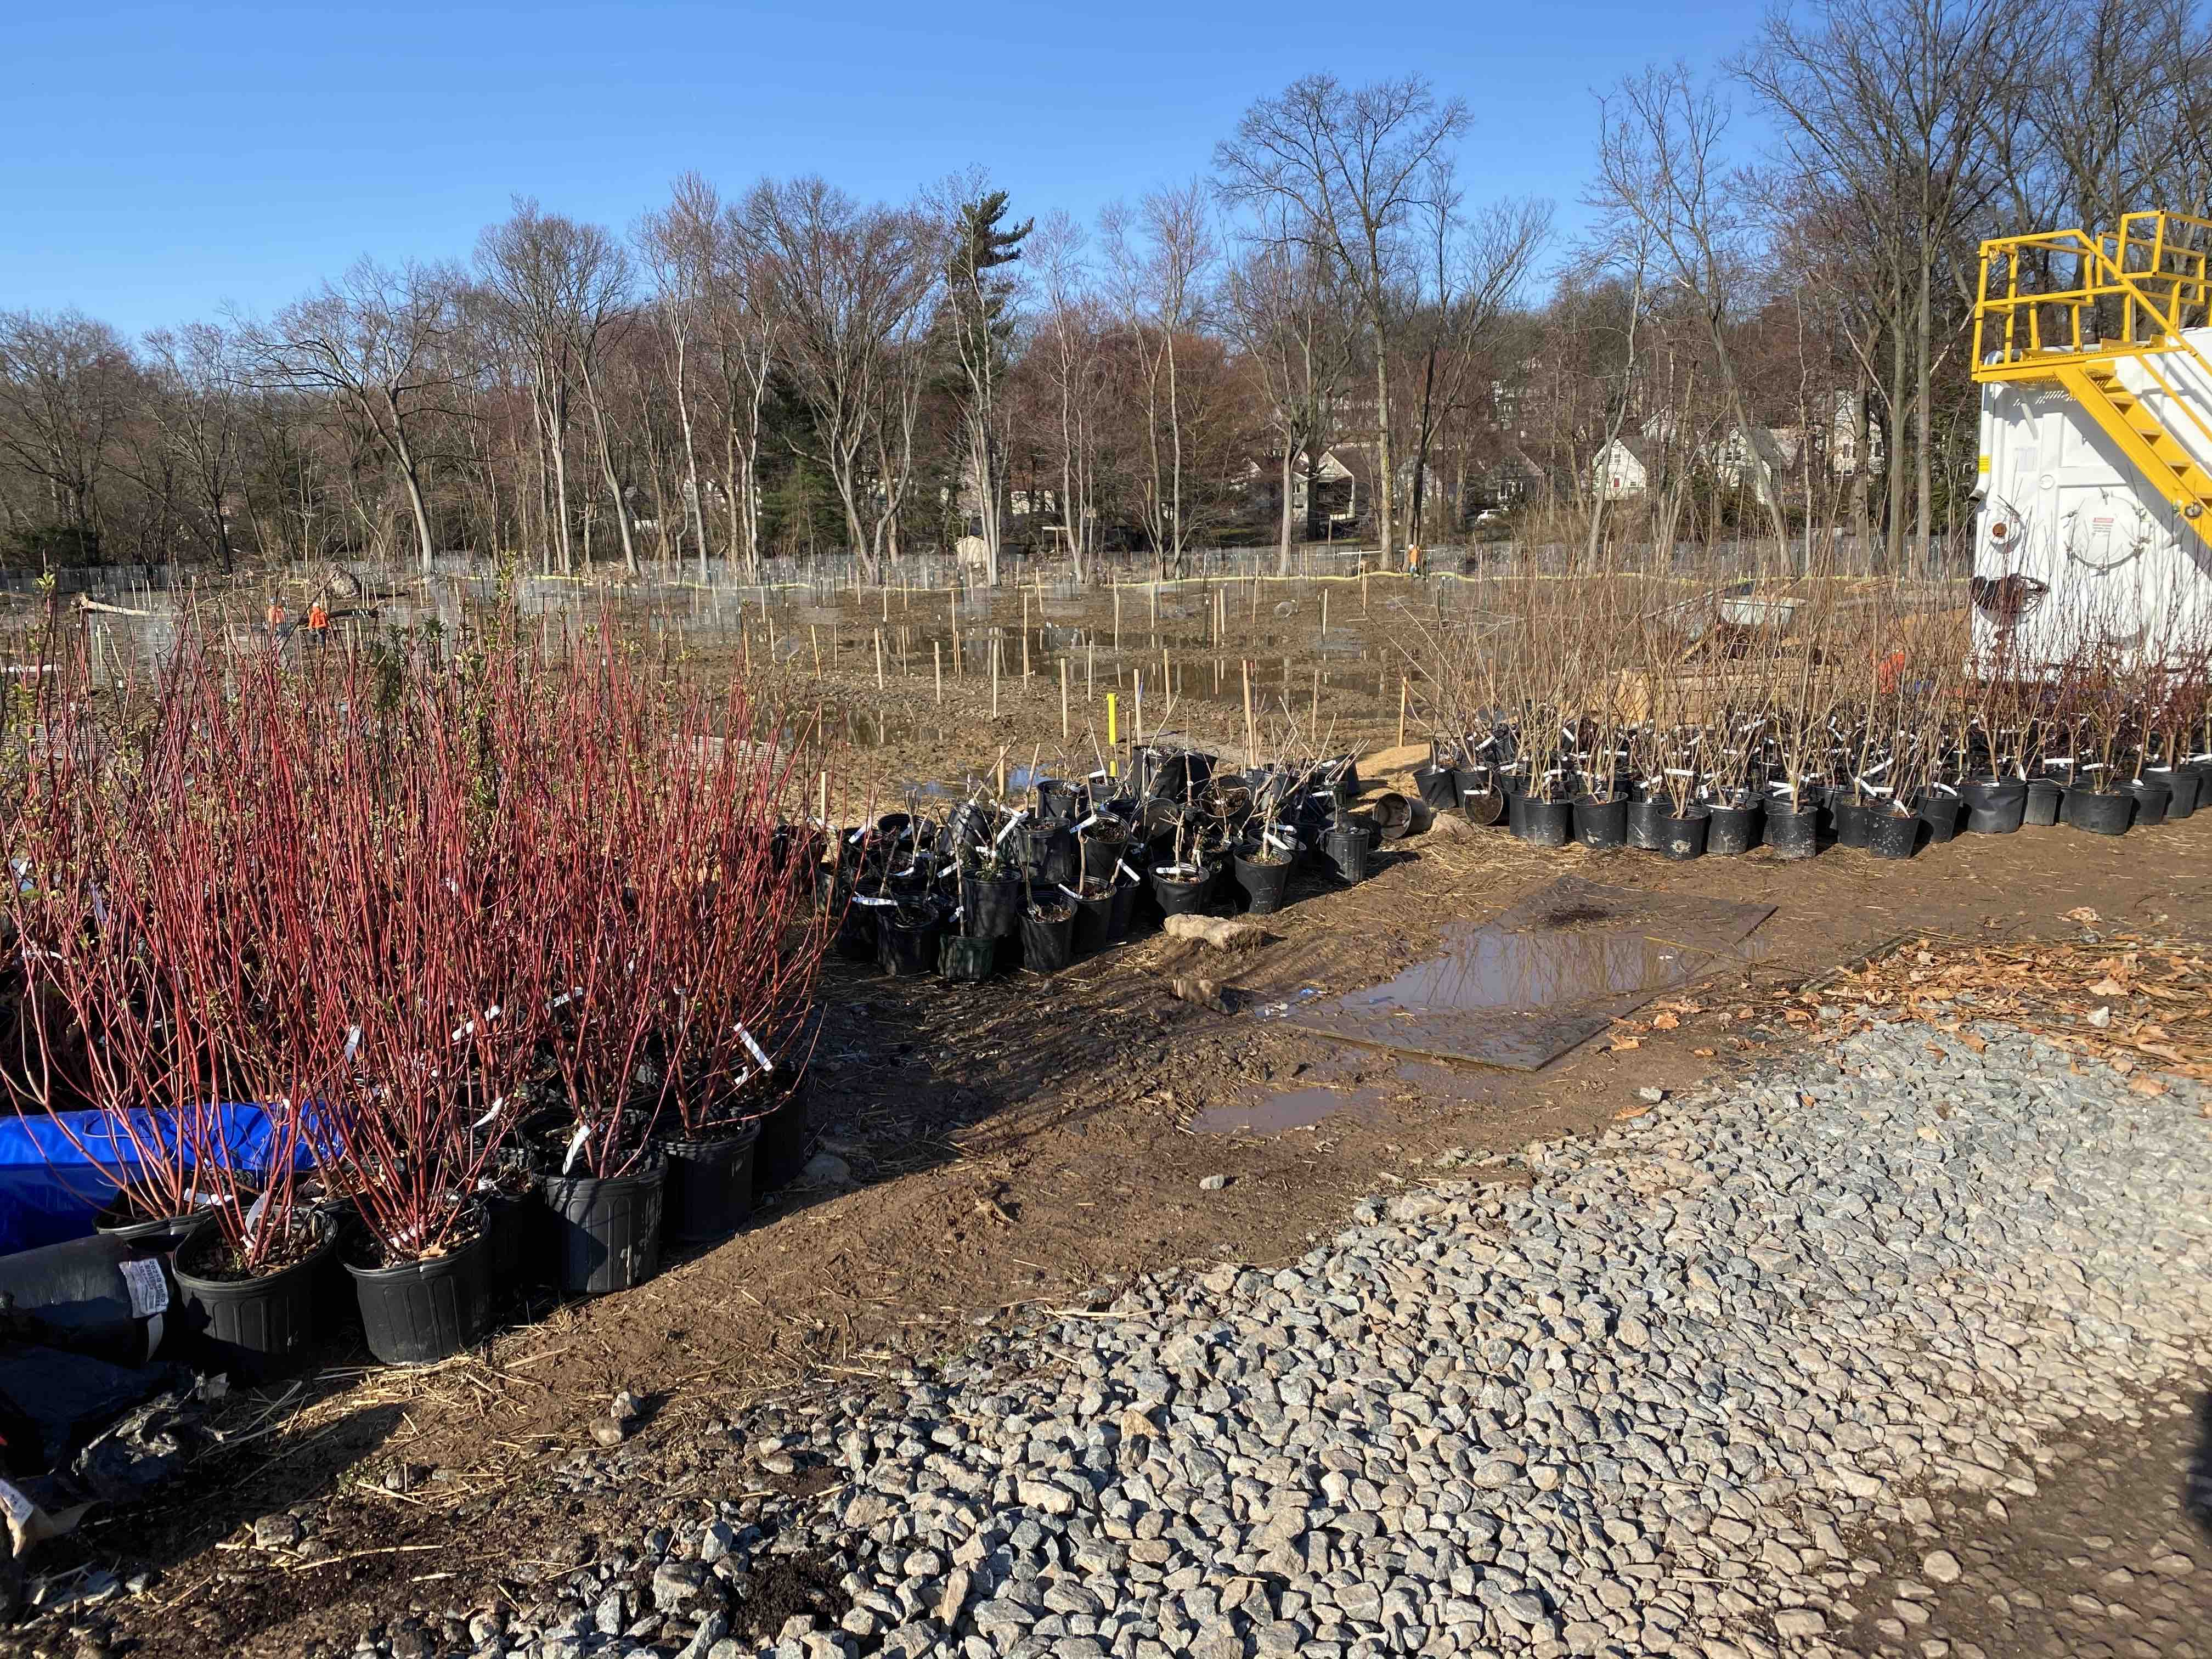 Removing invasive species and replacing them with native plants, shrubs and trees sets the stage for a flourishing native plant community year after year.